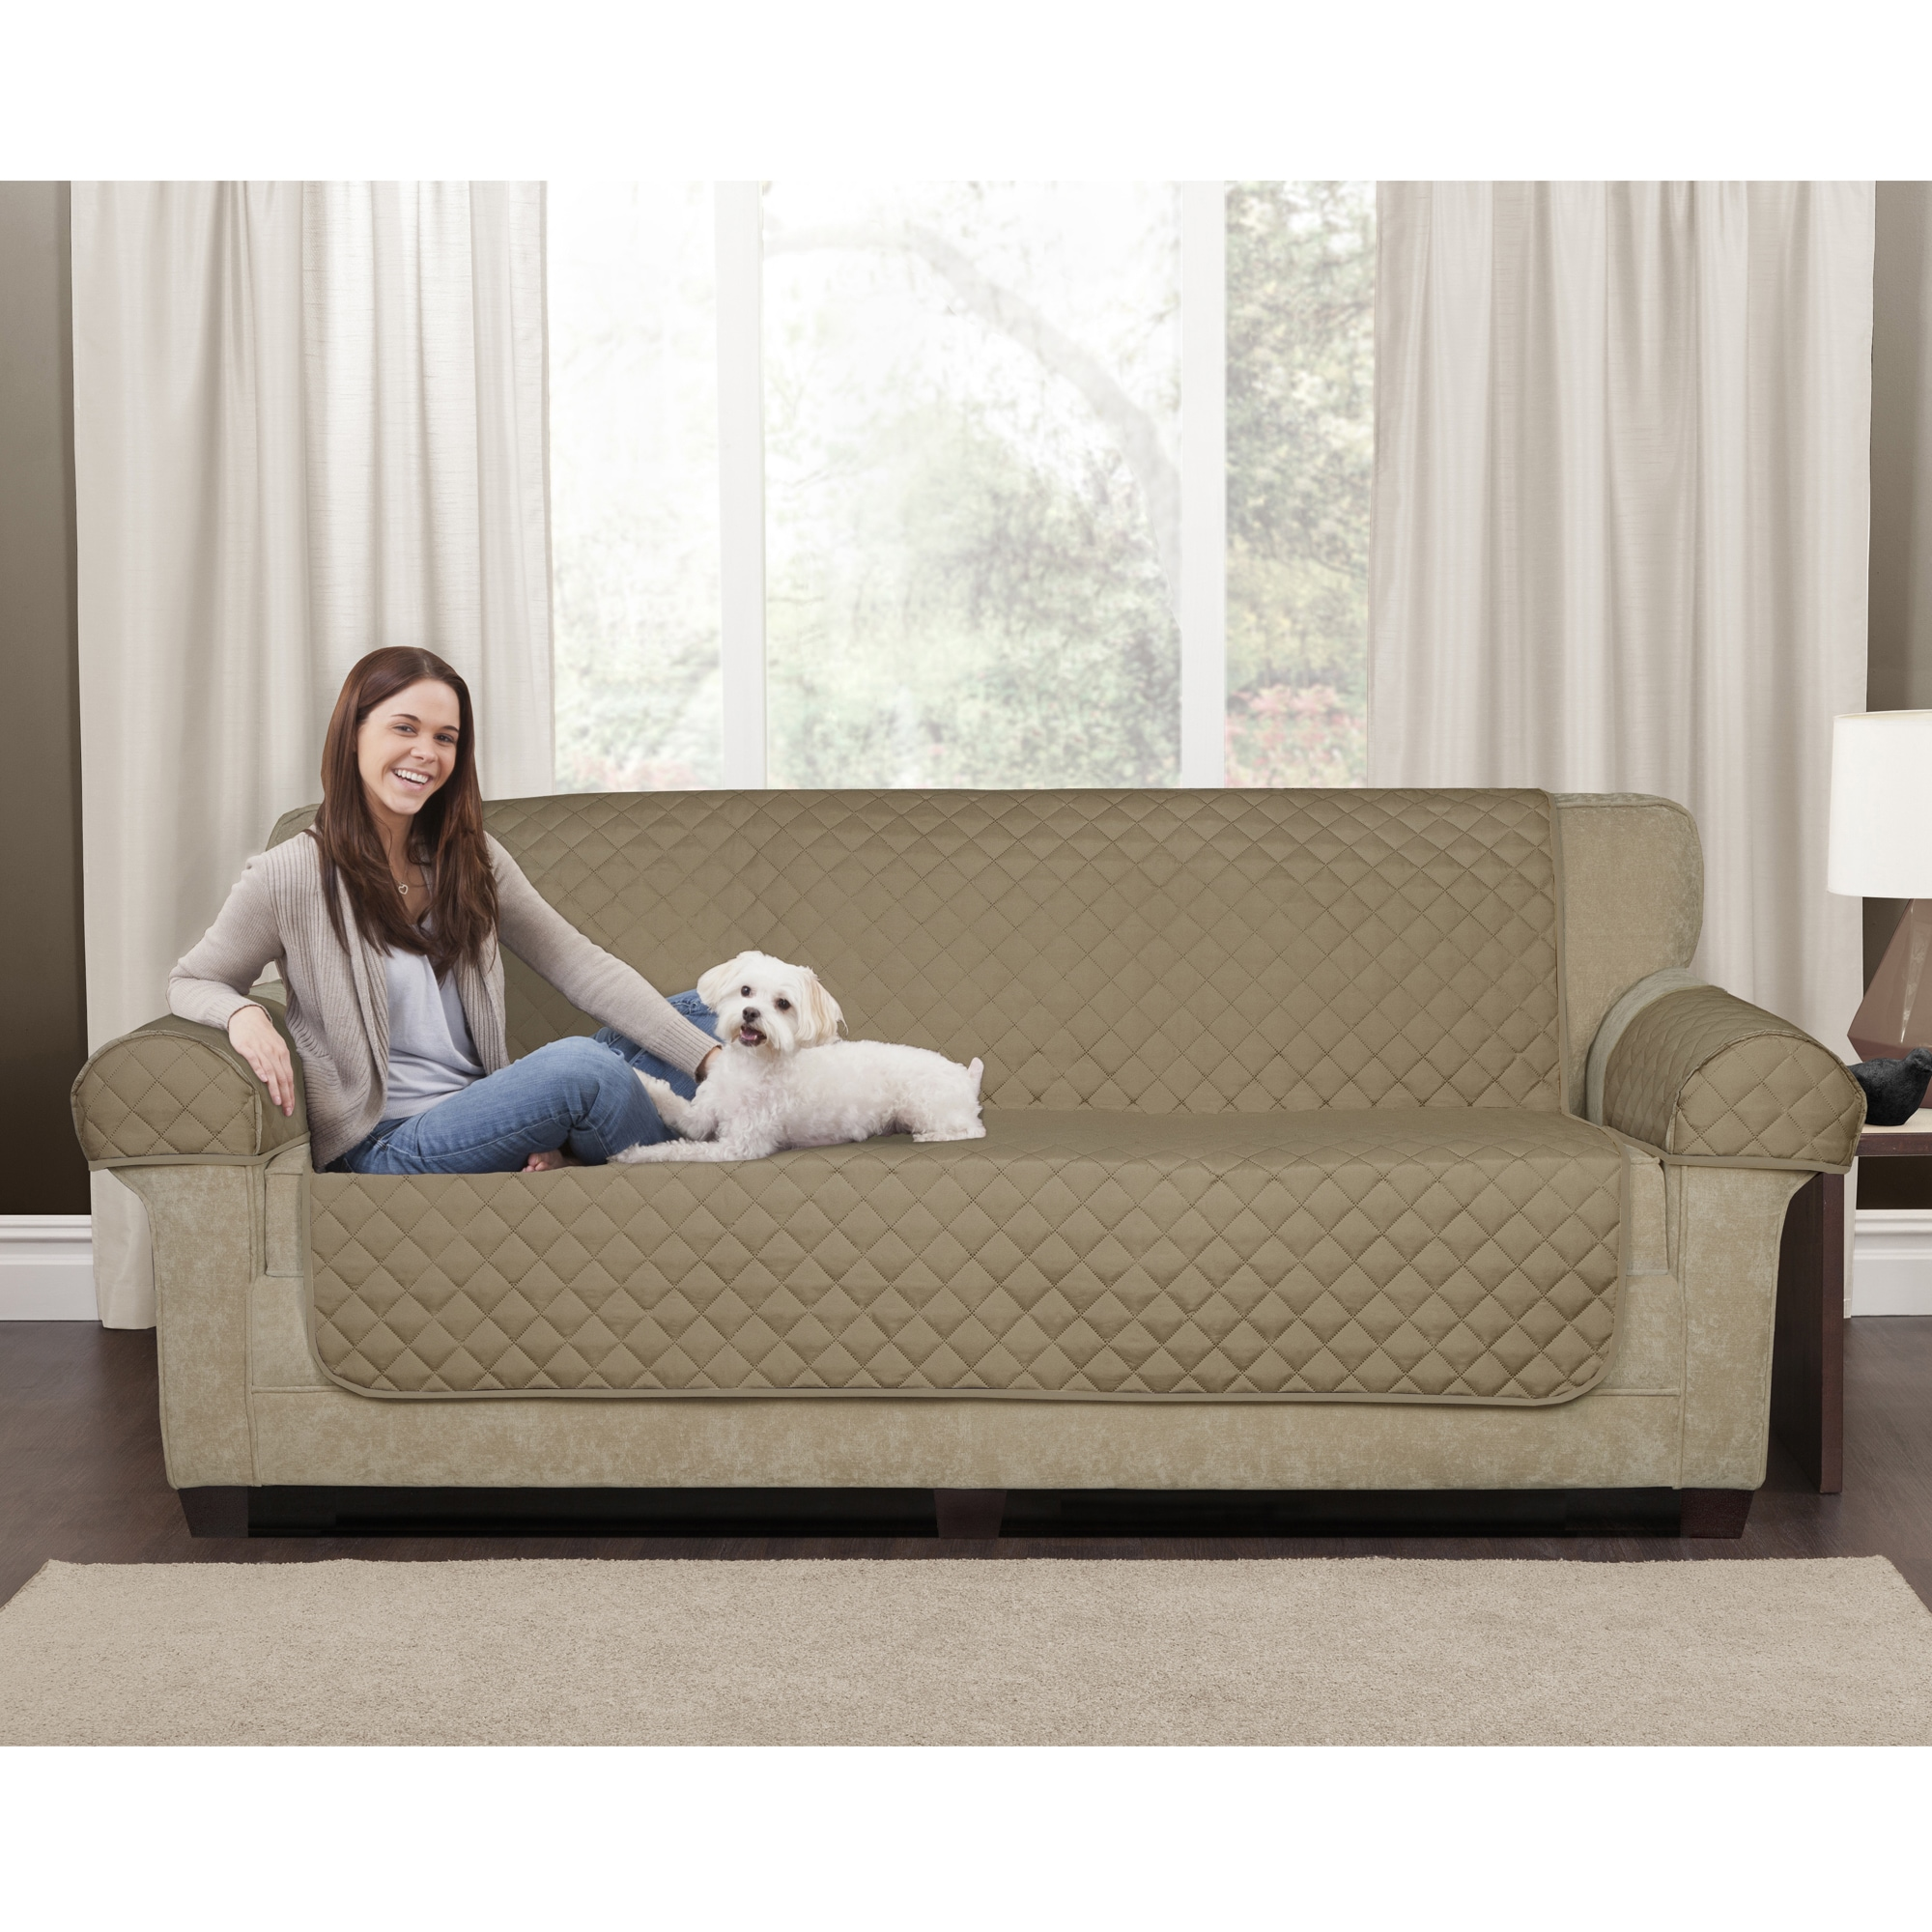 Maytex 3 Piece Waterproof Quilted Suede Sofa Pet Cover   Free Shipping  Today   Overstock   17757726